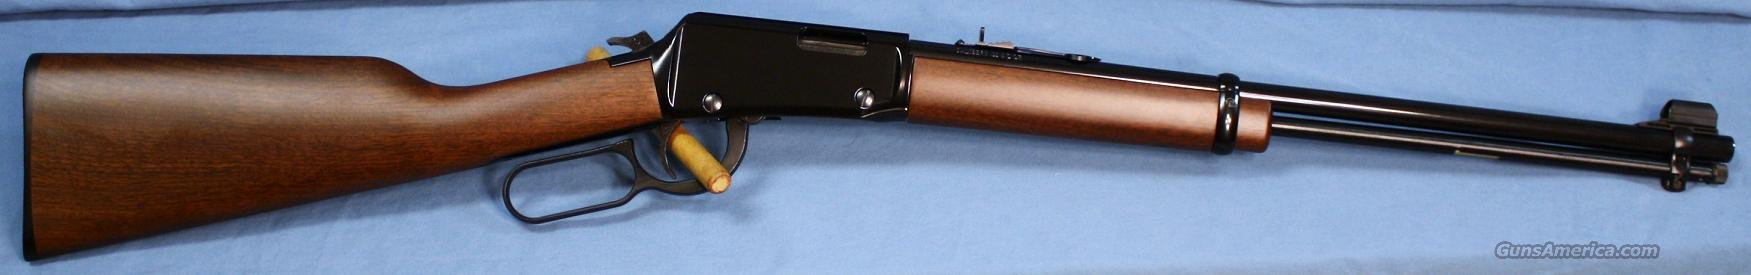 Henry Rifle Co. Lever Action Carbine .22 S,L,LR  Guns > Rifles > Henry Rifle Company